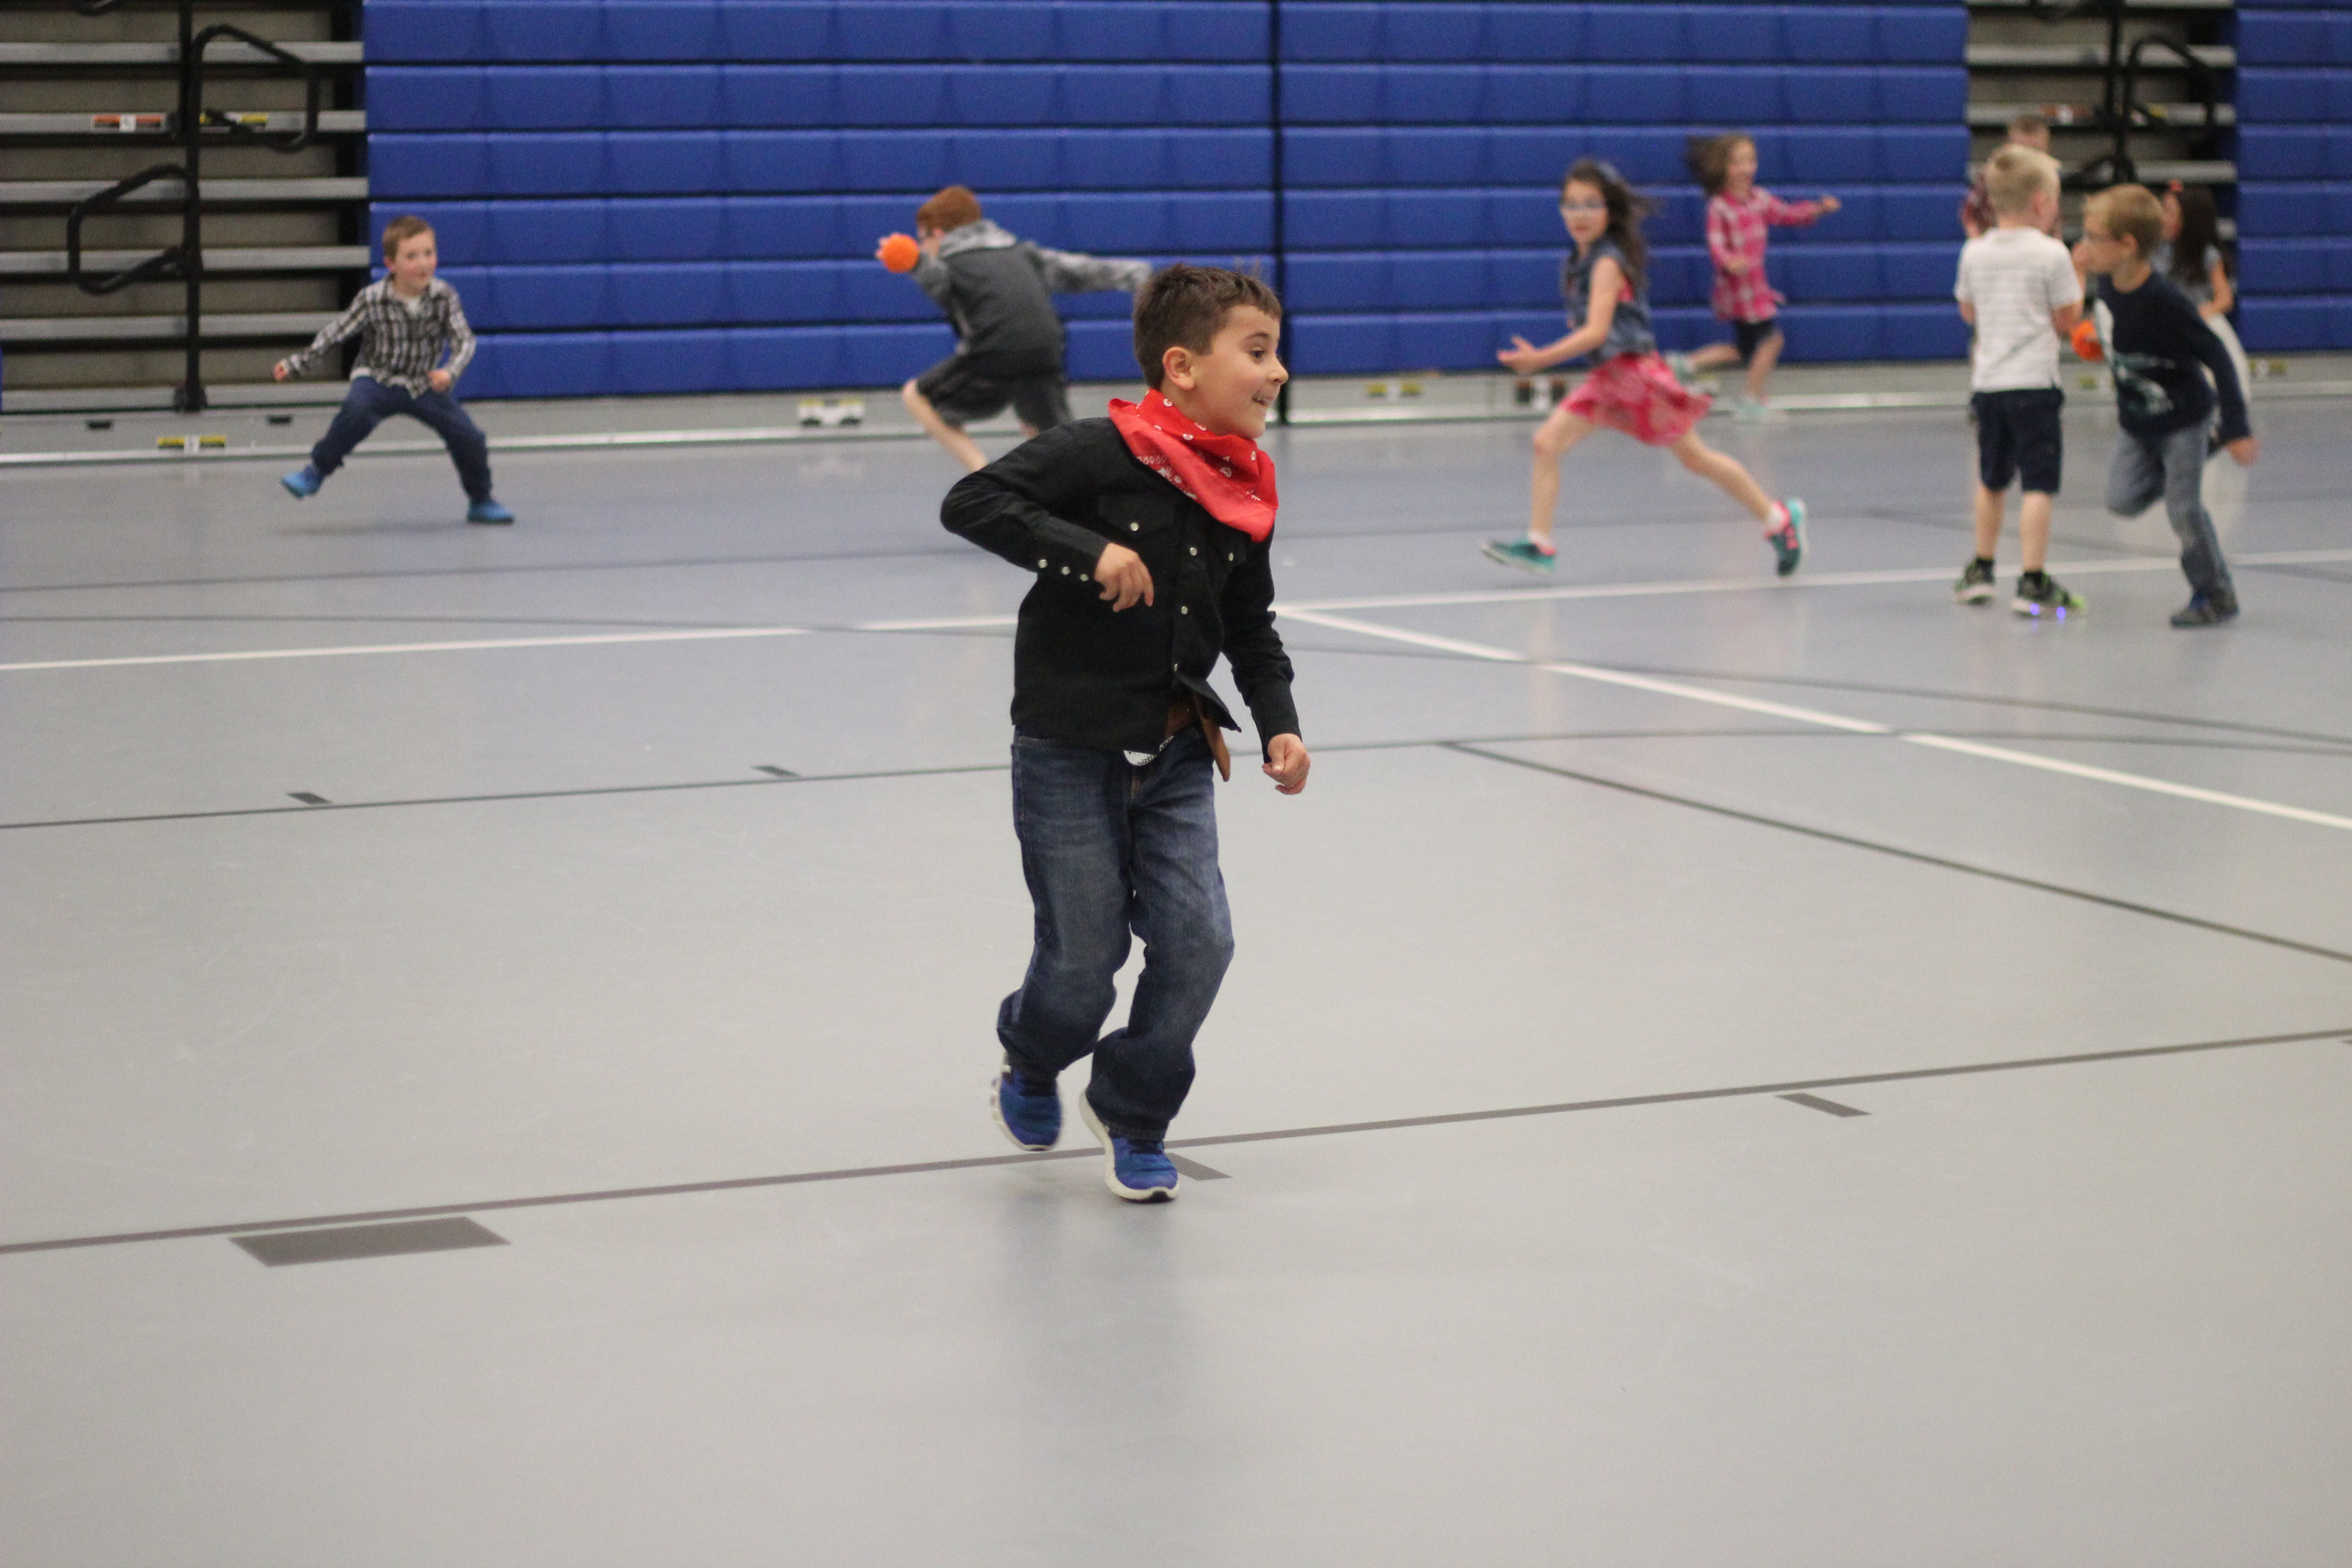 Students play freeze-tag in gym